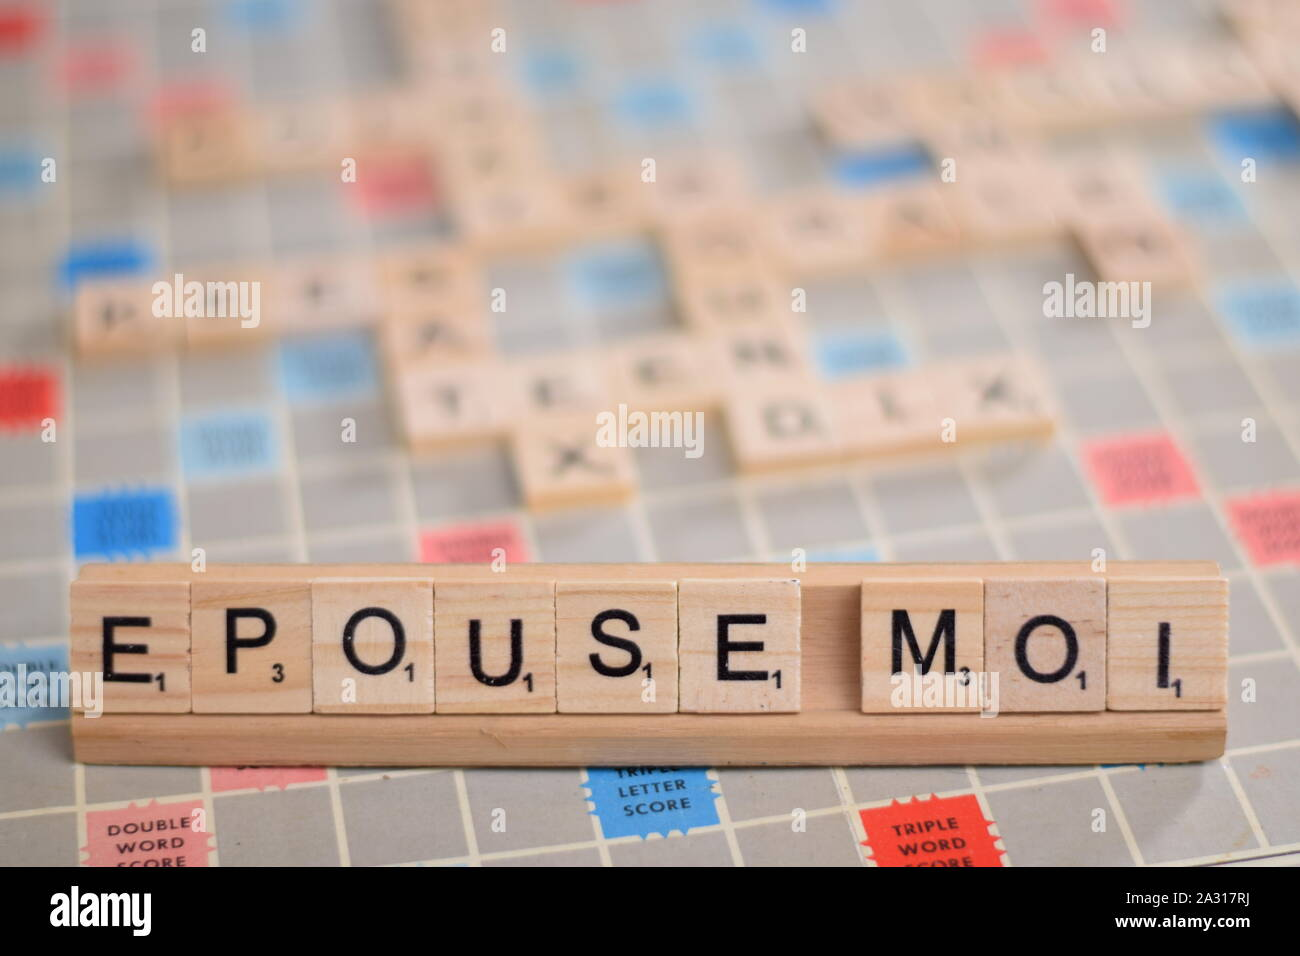 The French Word Epouse Moi In English Marry Me In Wooden Scrabble Tiles On A Rack The Background A Vintage Board Out Of Focus Copy Space Stock Photo Alamy